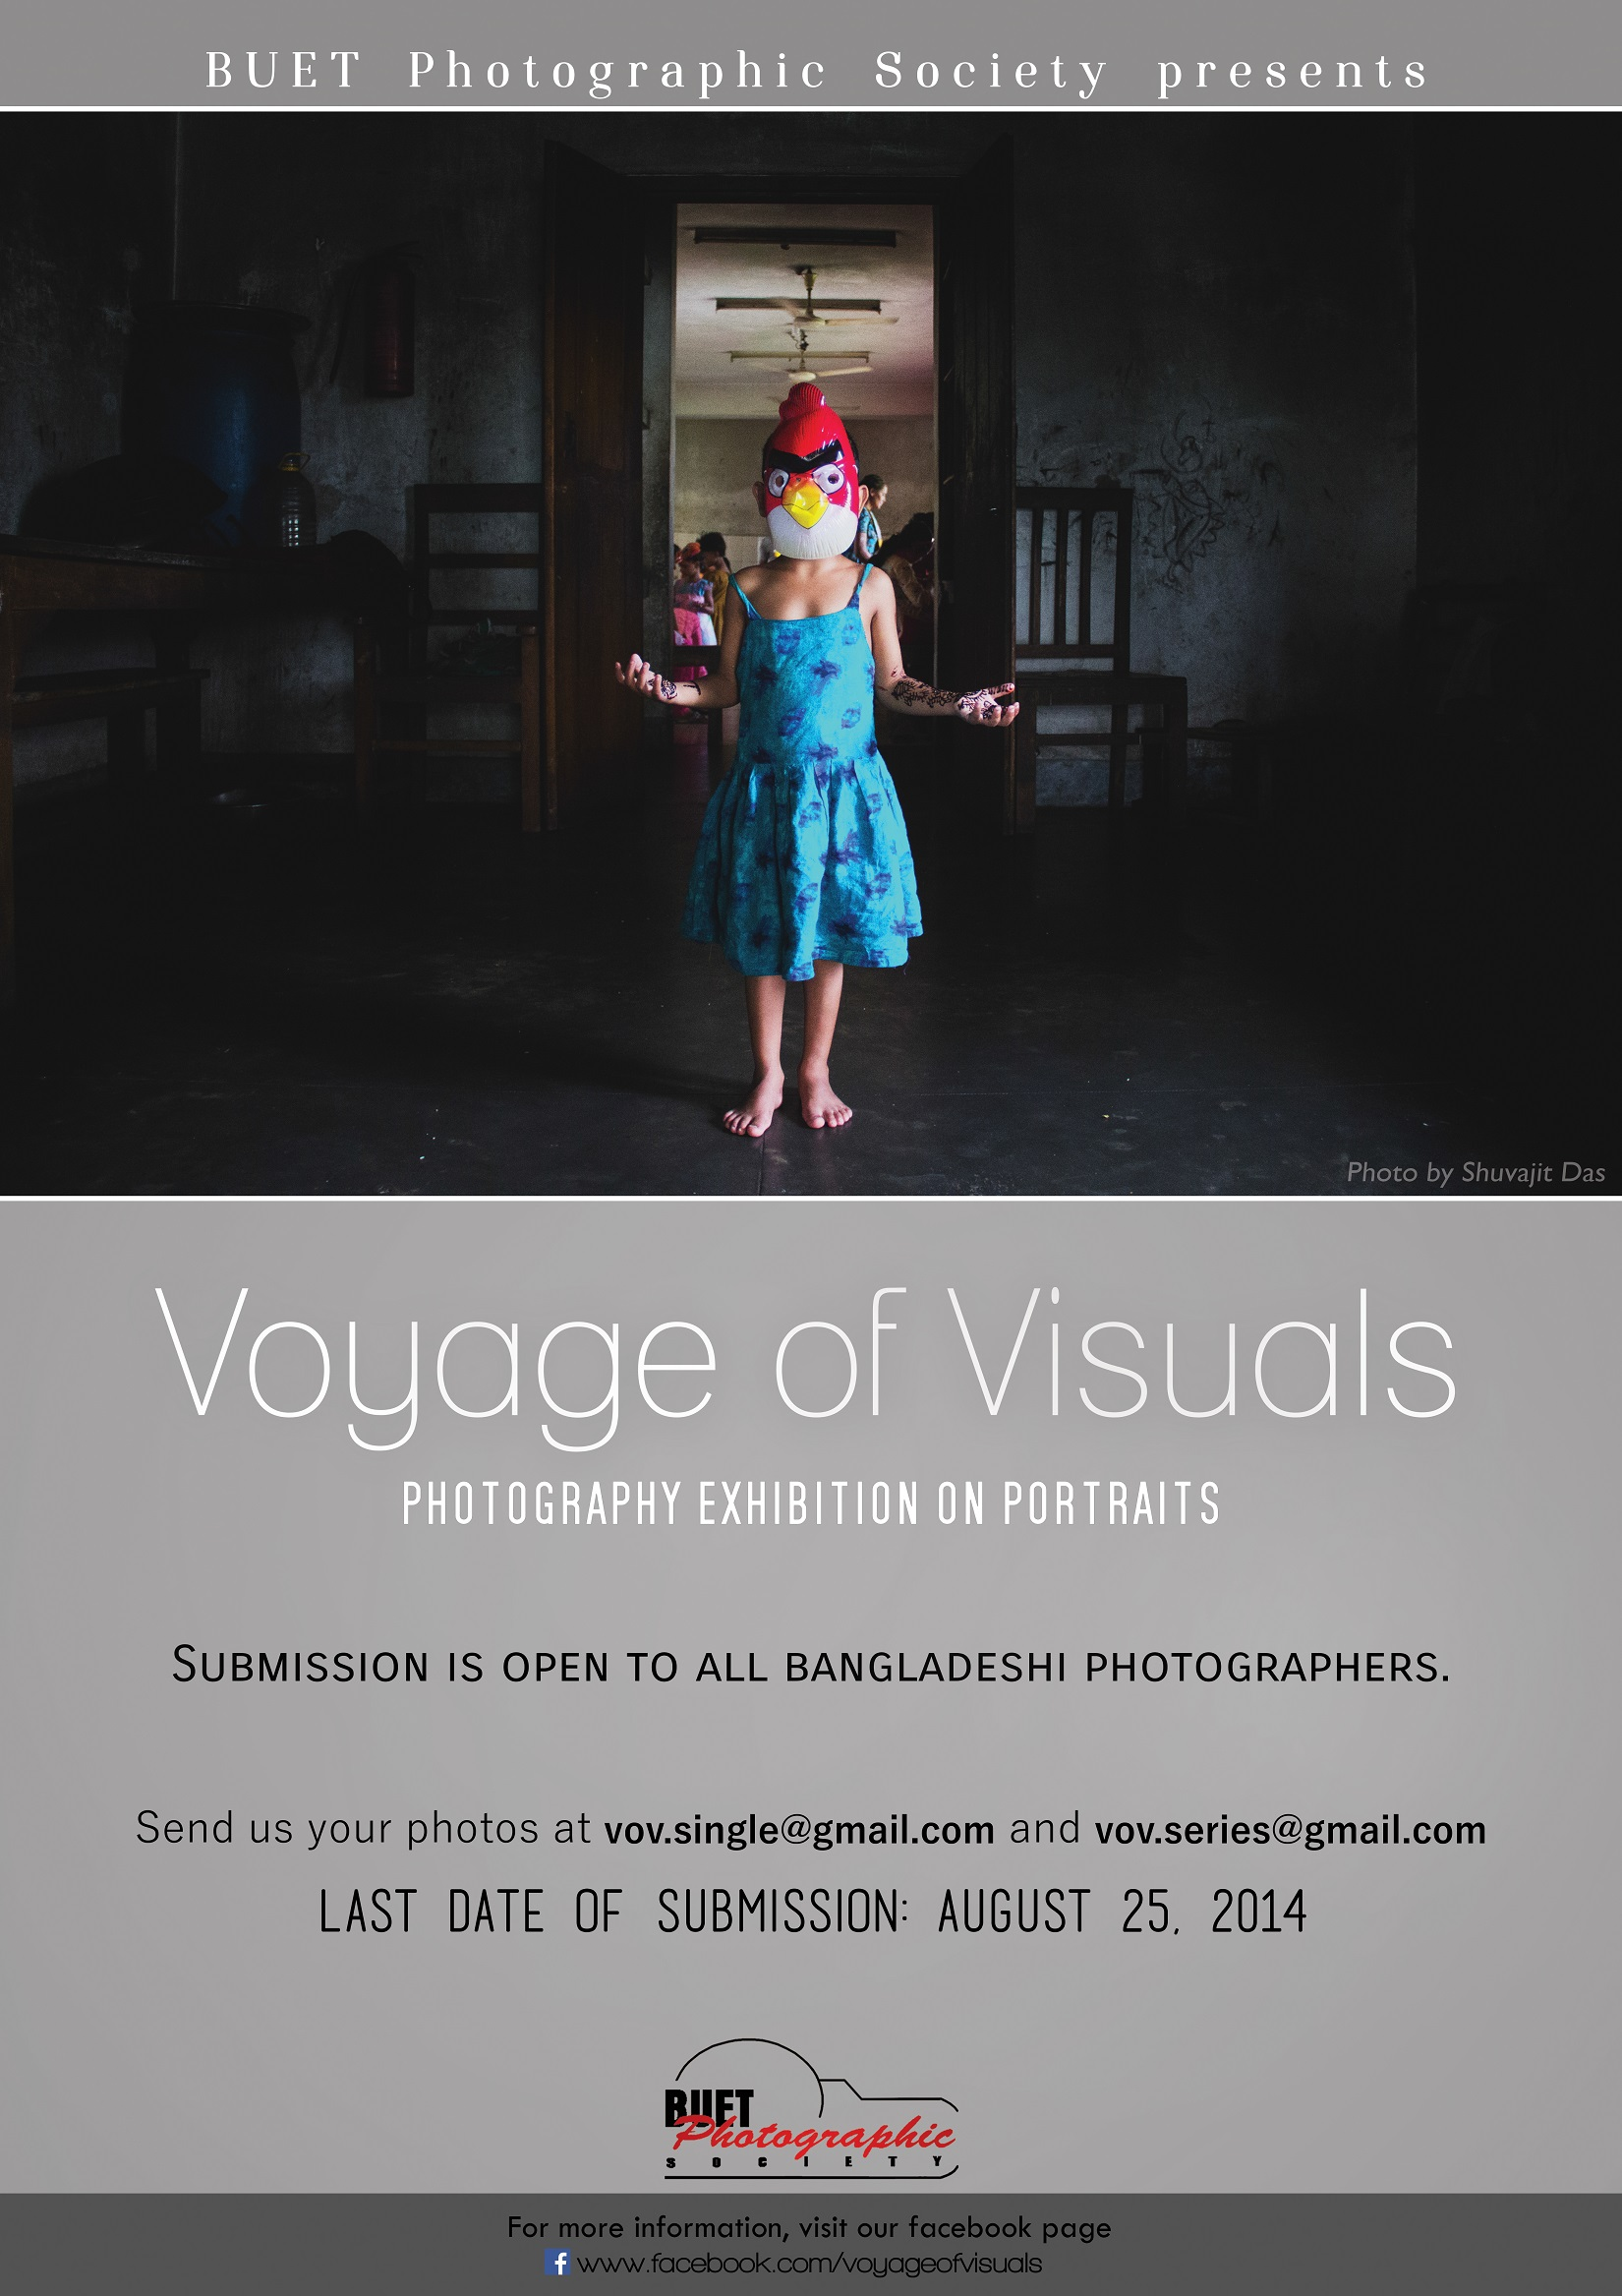 Voyage of Visuals